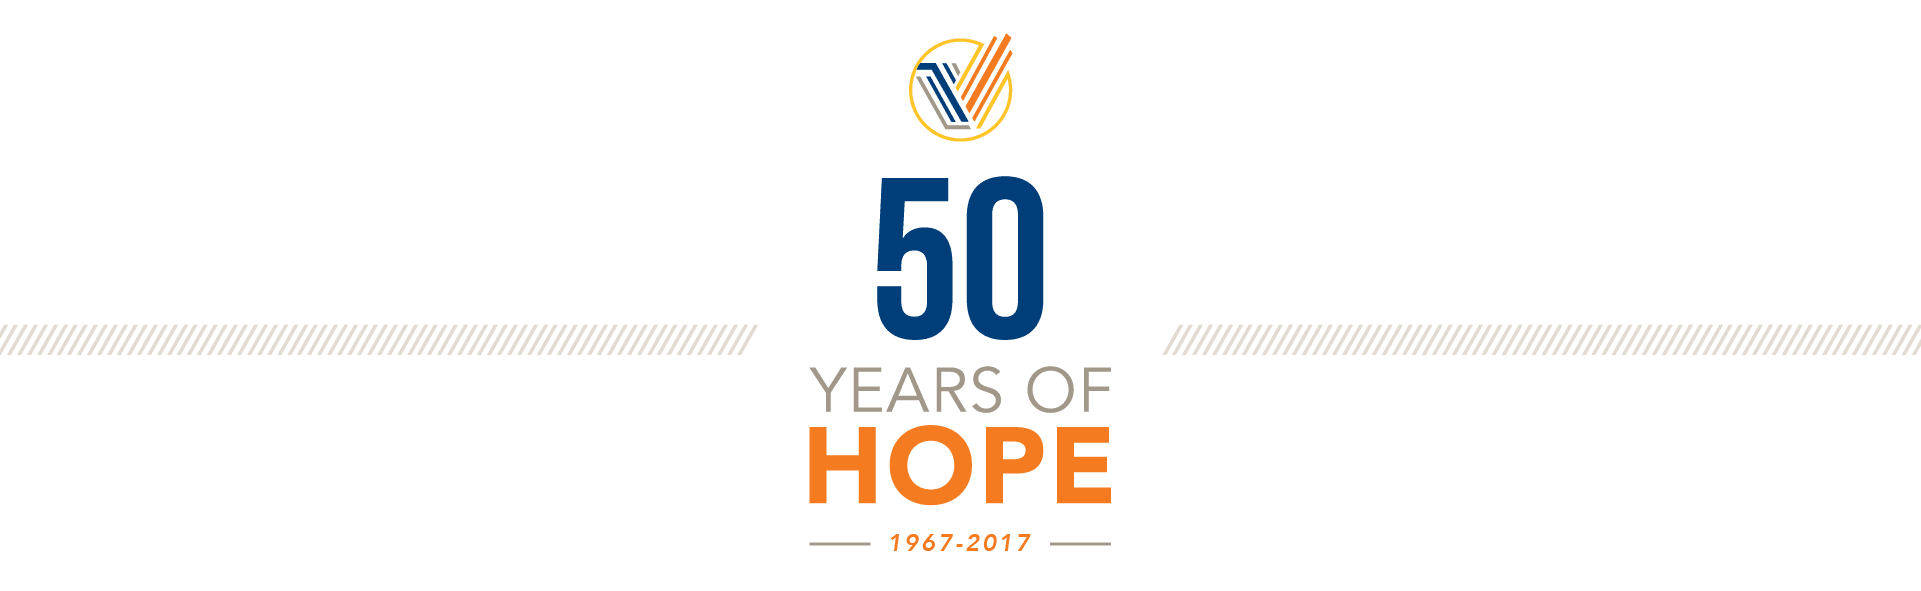 VH_50YearsOfHope_Logo-01